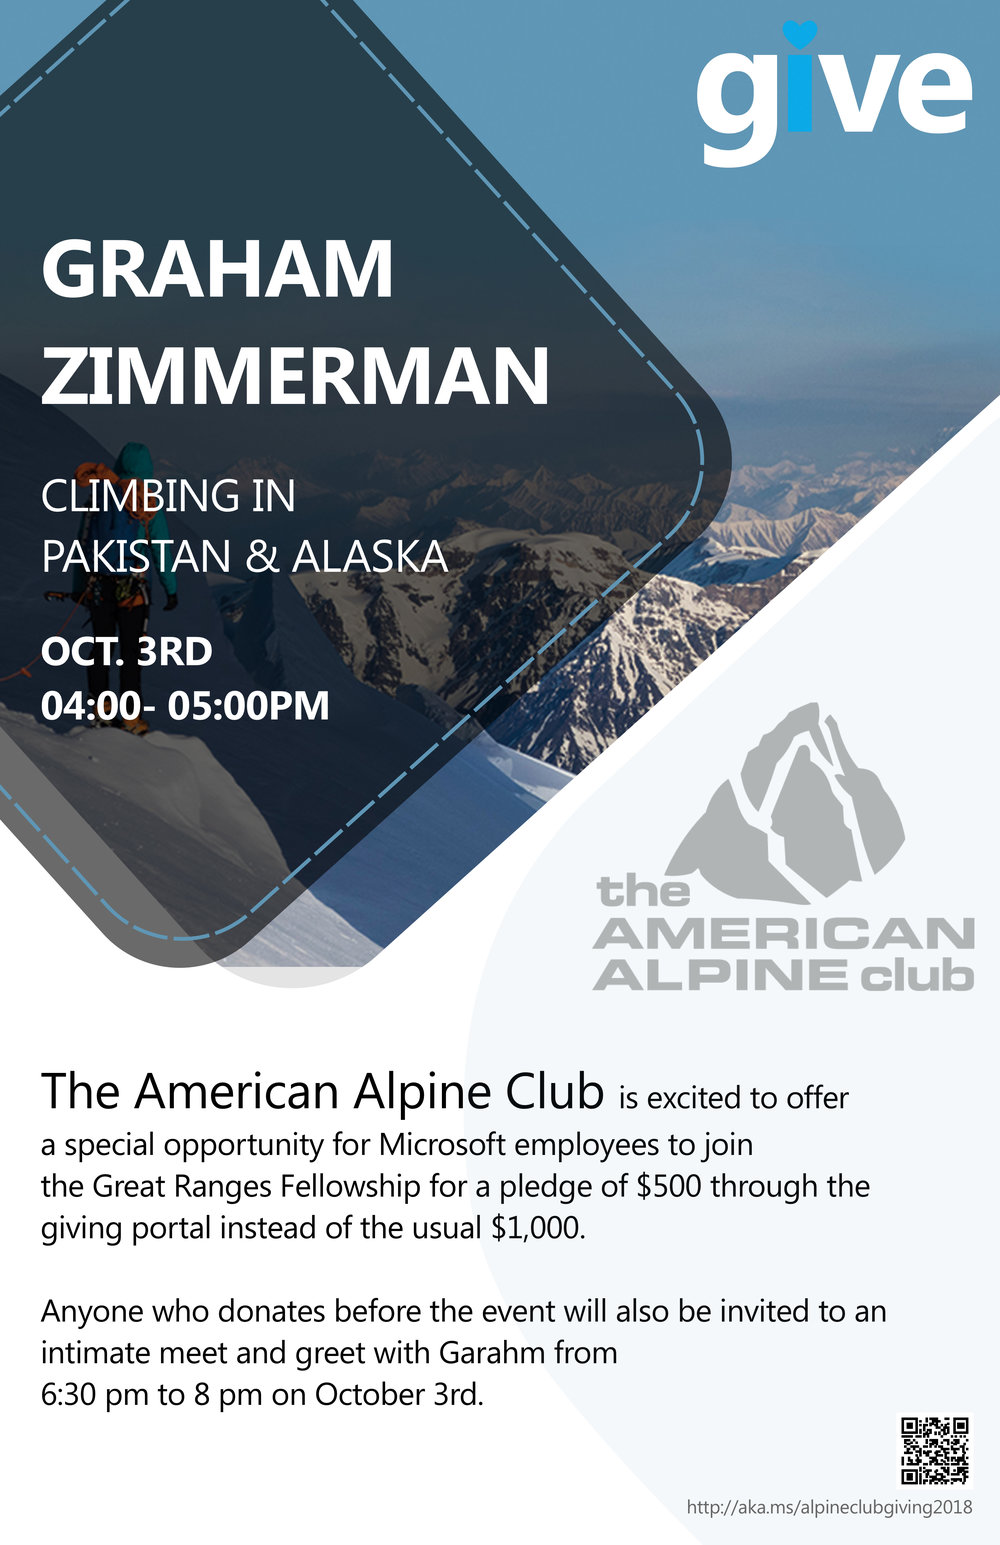 Poster made in collaboration with designers from Microsofts Office Edu Team for a special presentation by Graham Zimmerman in support of the American Alpine Club's Great Ranges Fellowship. This presentation occurred as part of  Microsofts Annual Giving Month .